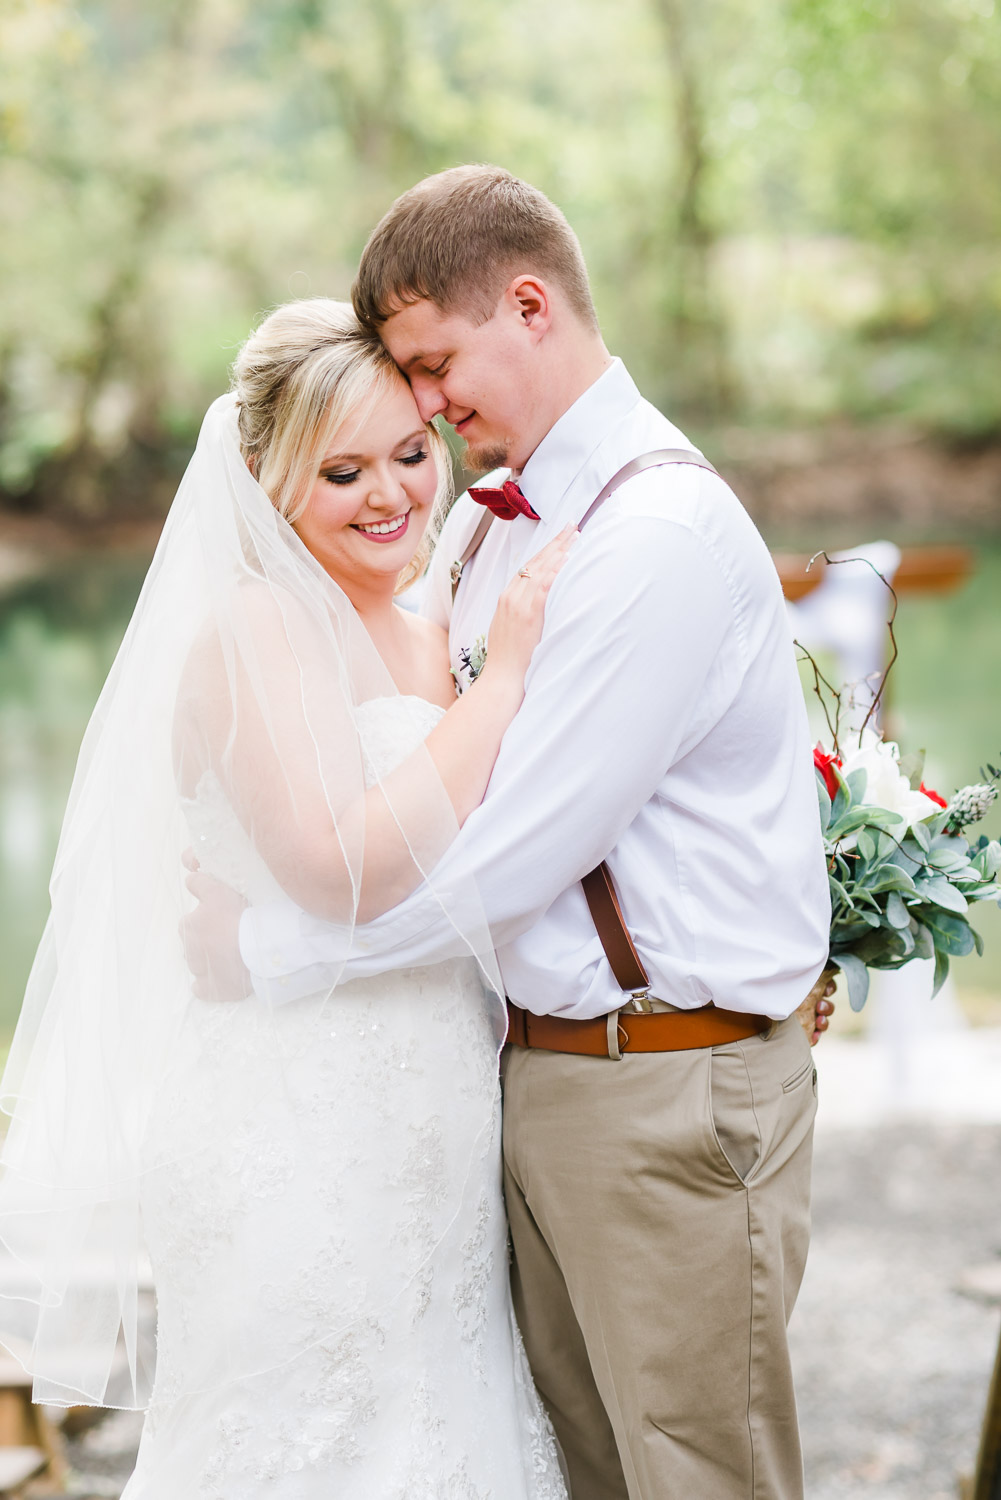 smiling bride in her groom's arms outside with red, white and greenery bouquet